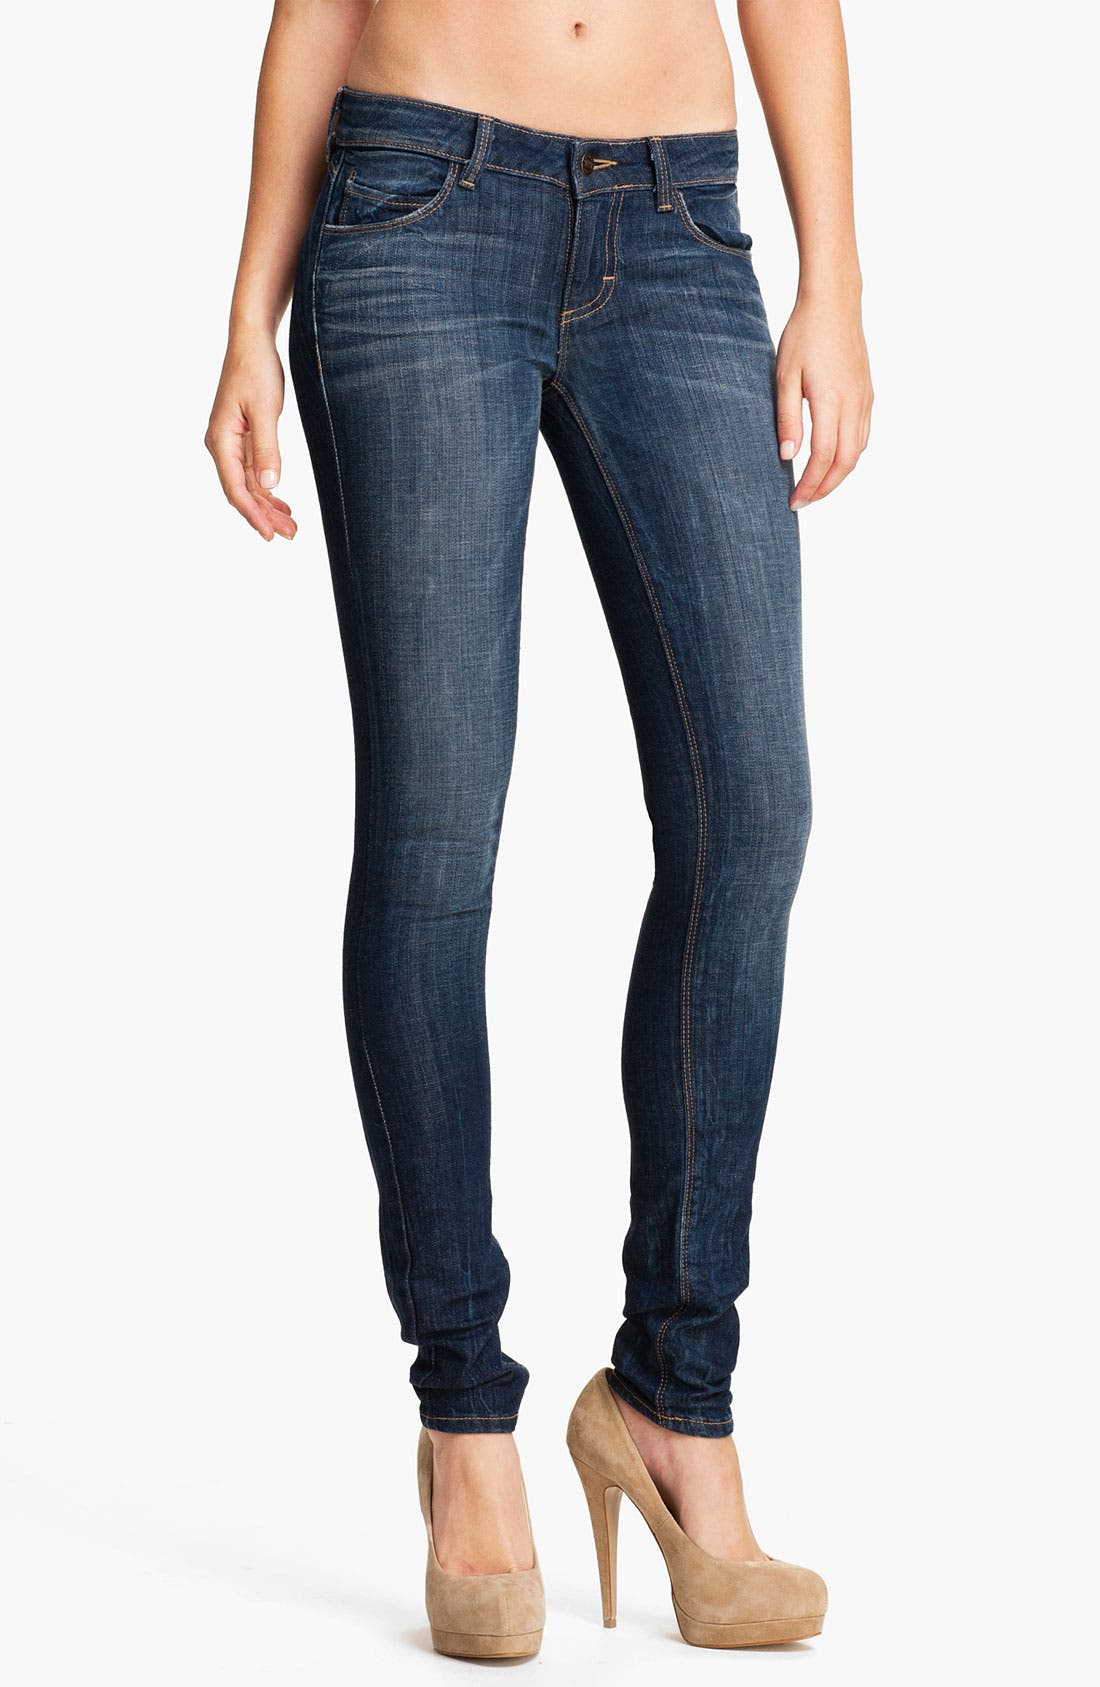 Alternate Image 1 Selected - Siwy 'Leona' Skinny Stretch Jeans (Rhythm of the Rain)